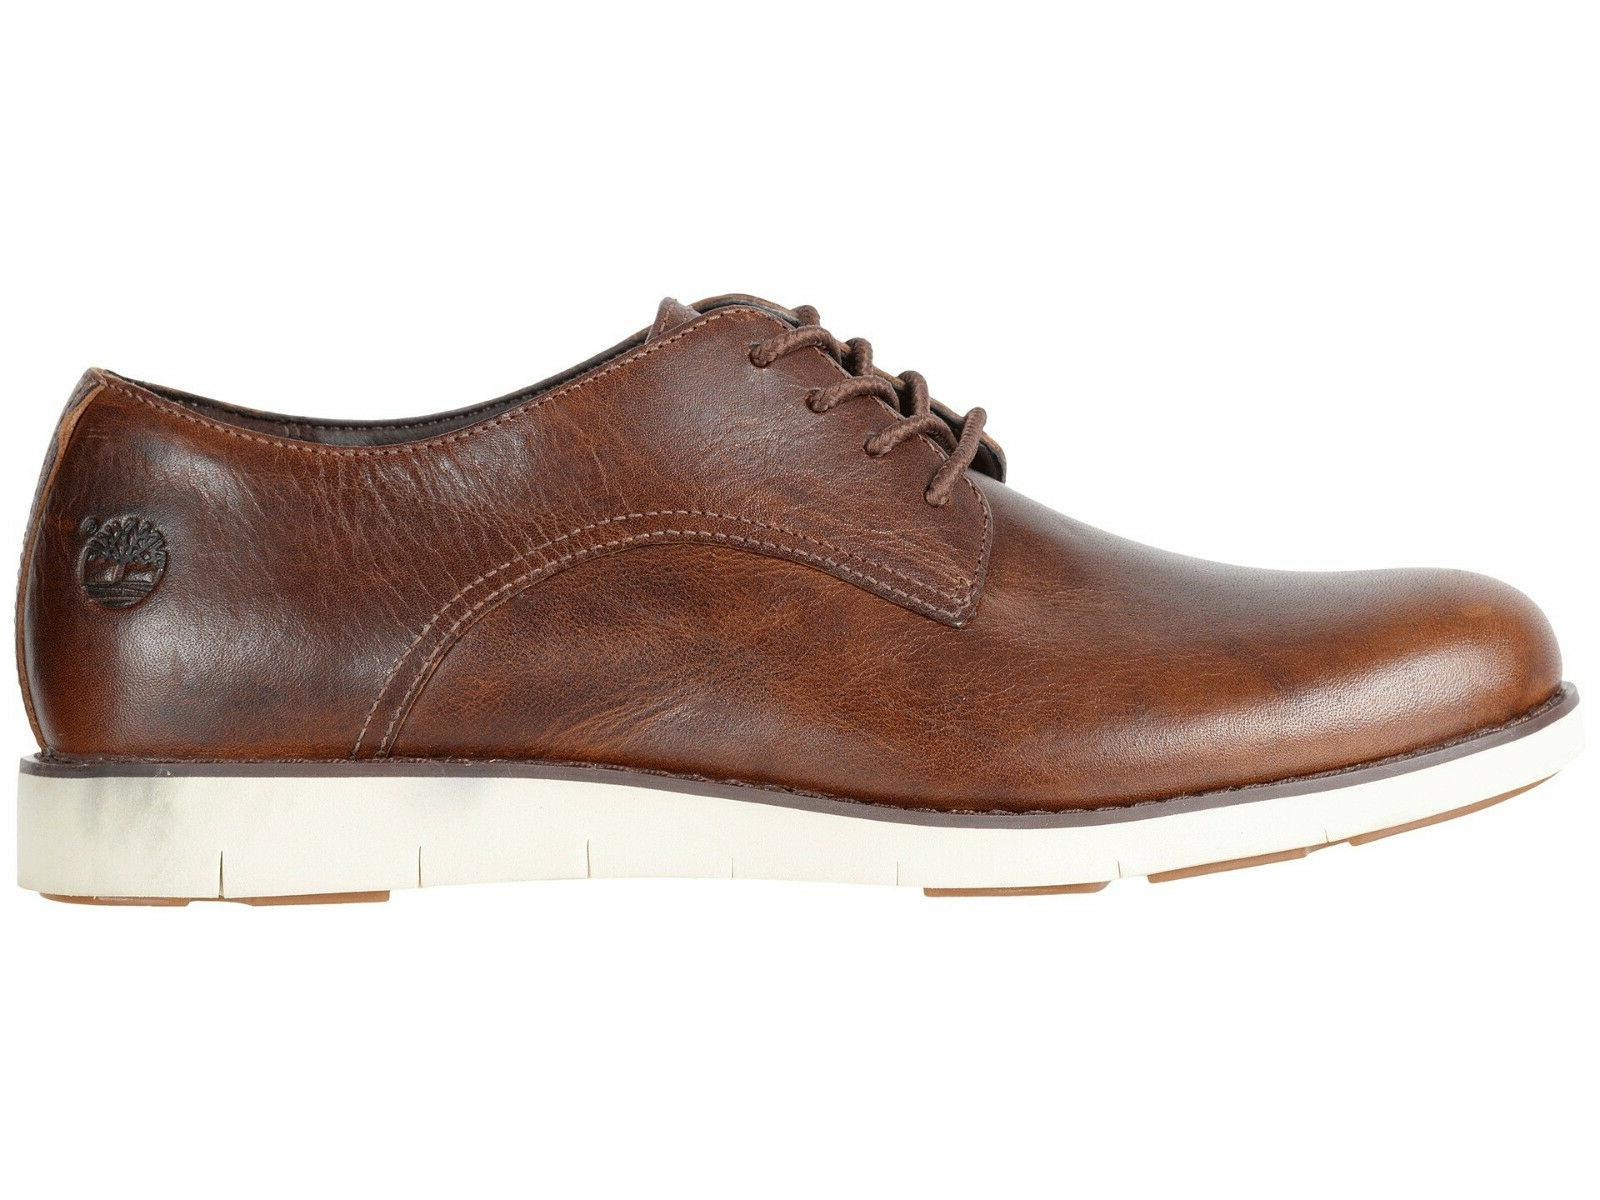 Womens Oxford Lakeville Brown Leather Oxfords Shoes NEW